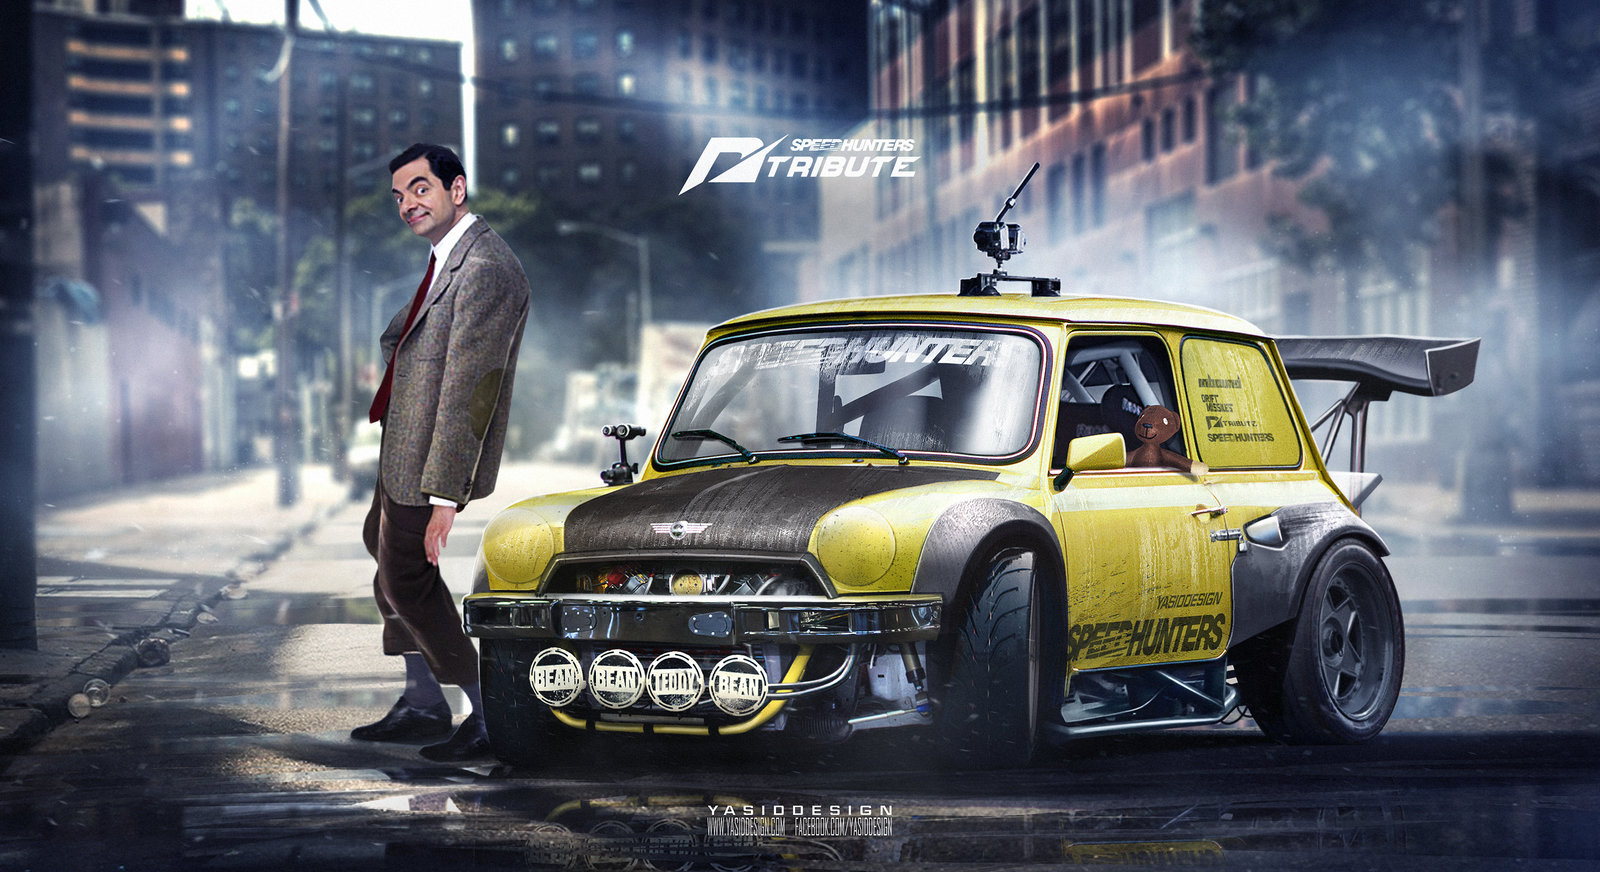 Speedhunters Mini cooper Need For Speed Tribute featuring Mr Bean